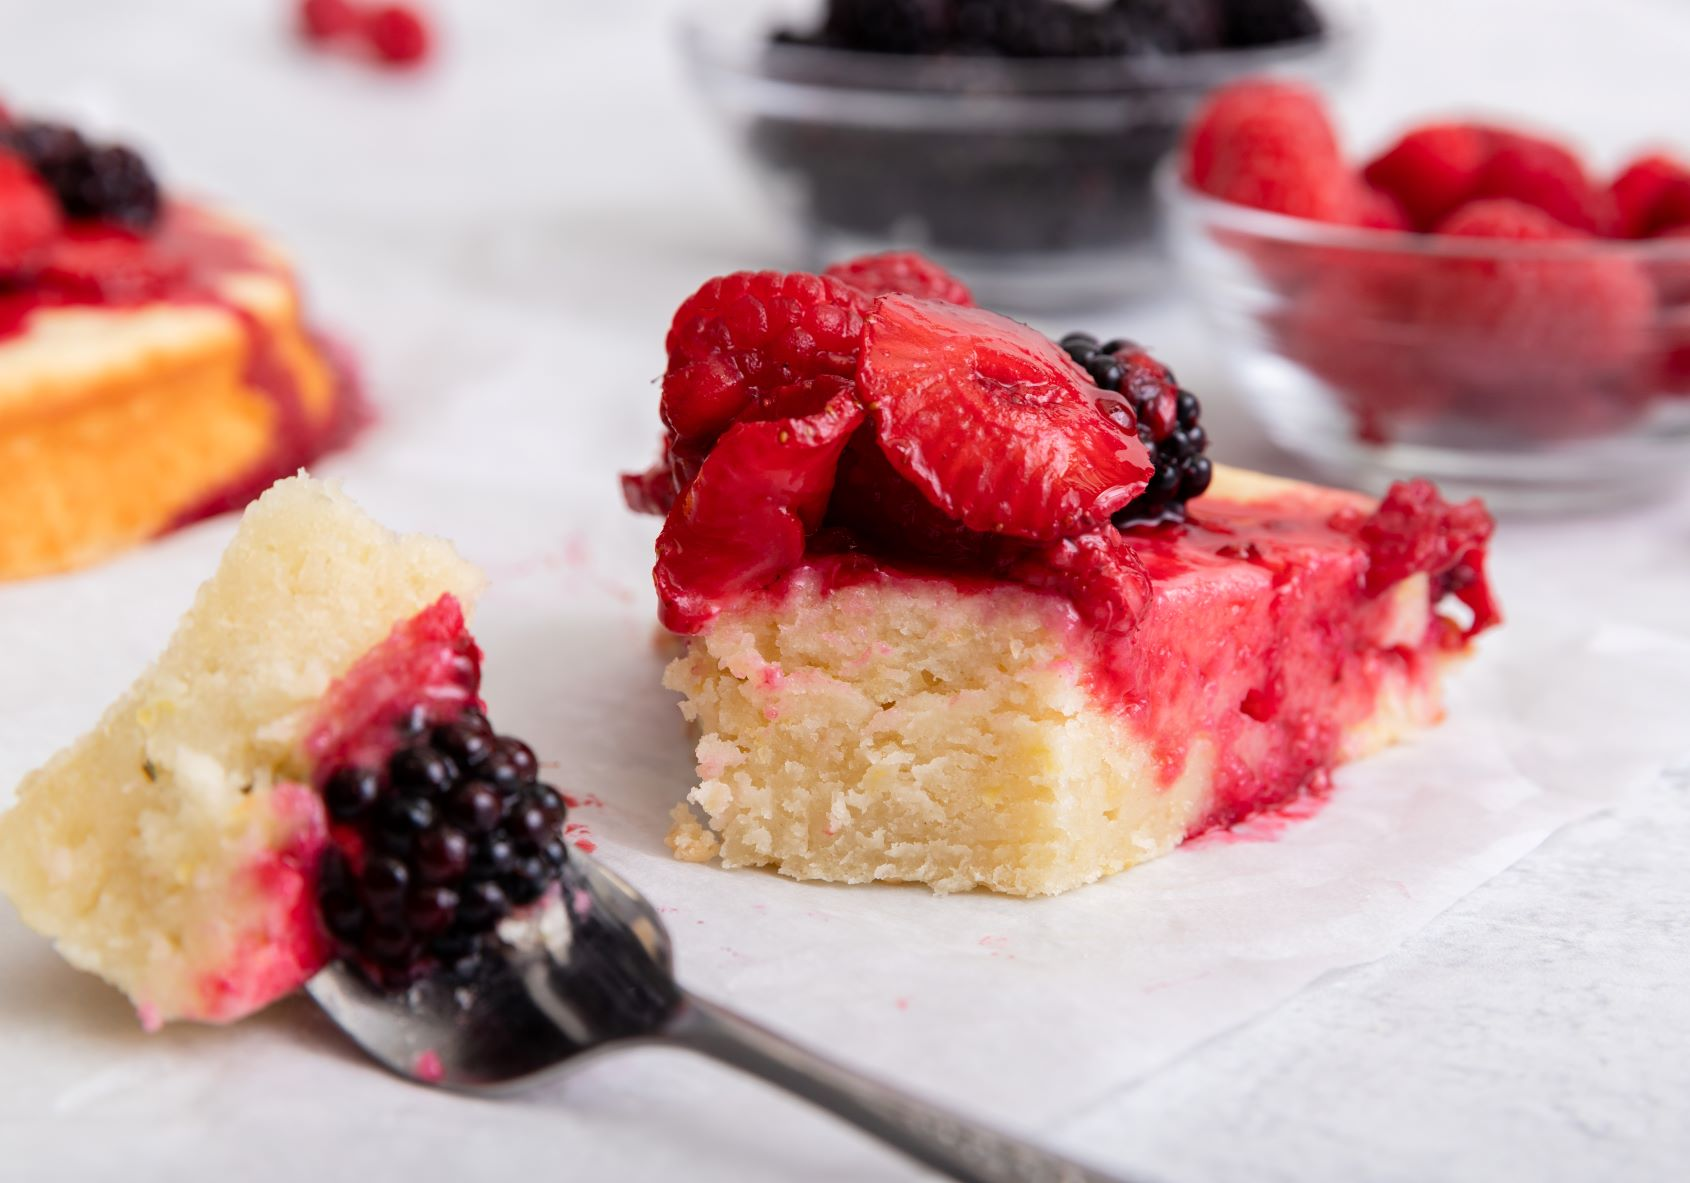 Sour Cream Cake with Mixed Berry Compote